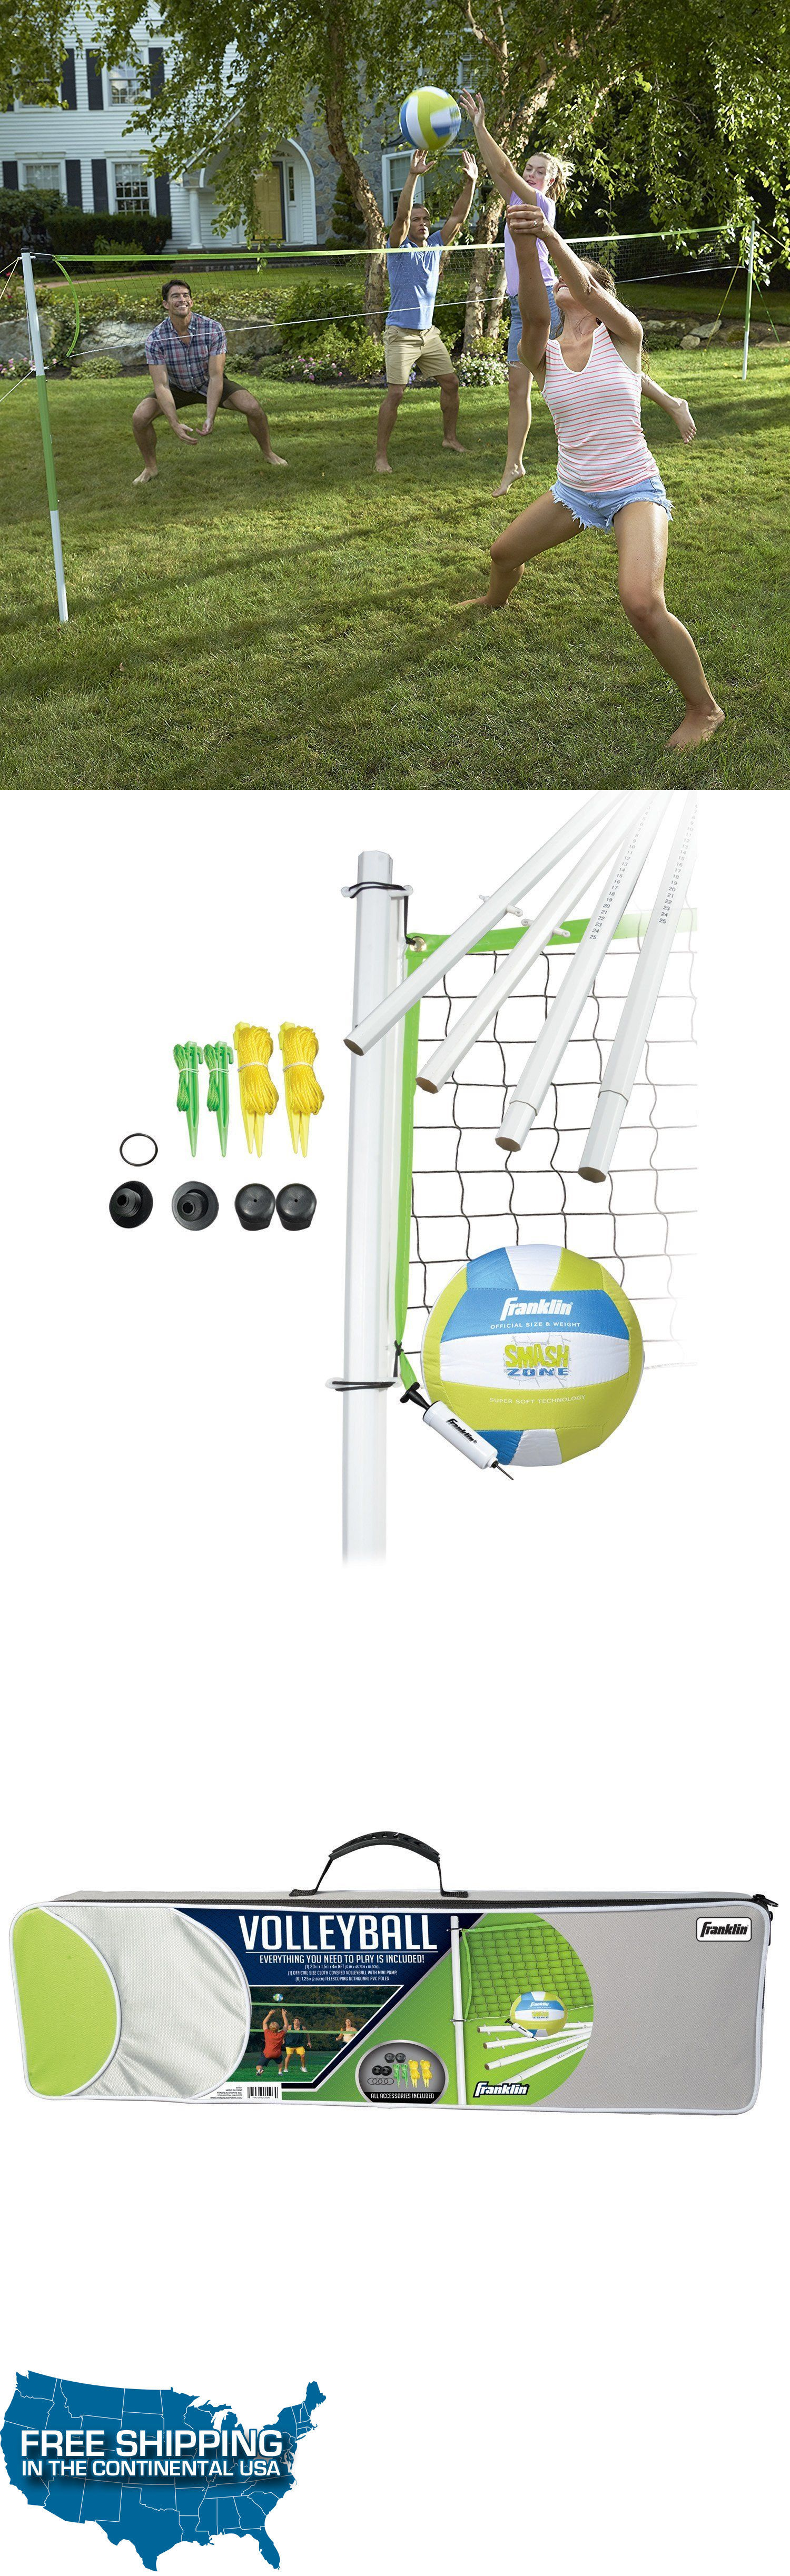 nets 159131 volleyball set intermediate portable carry bag